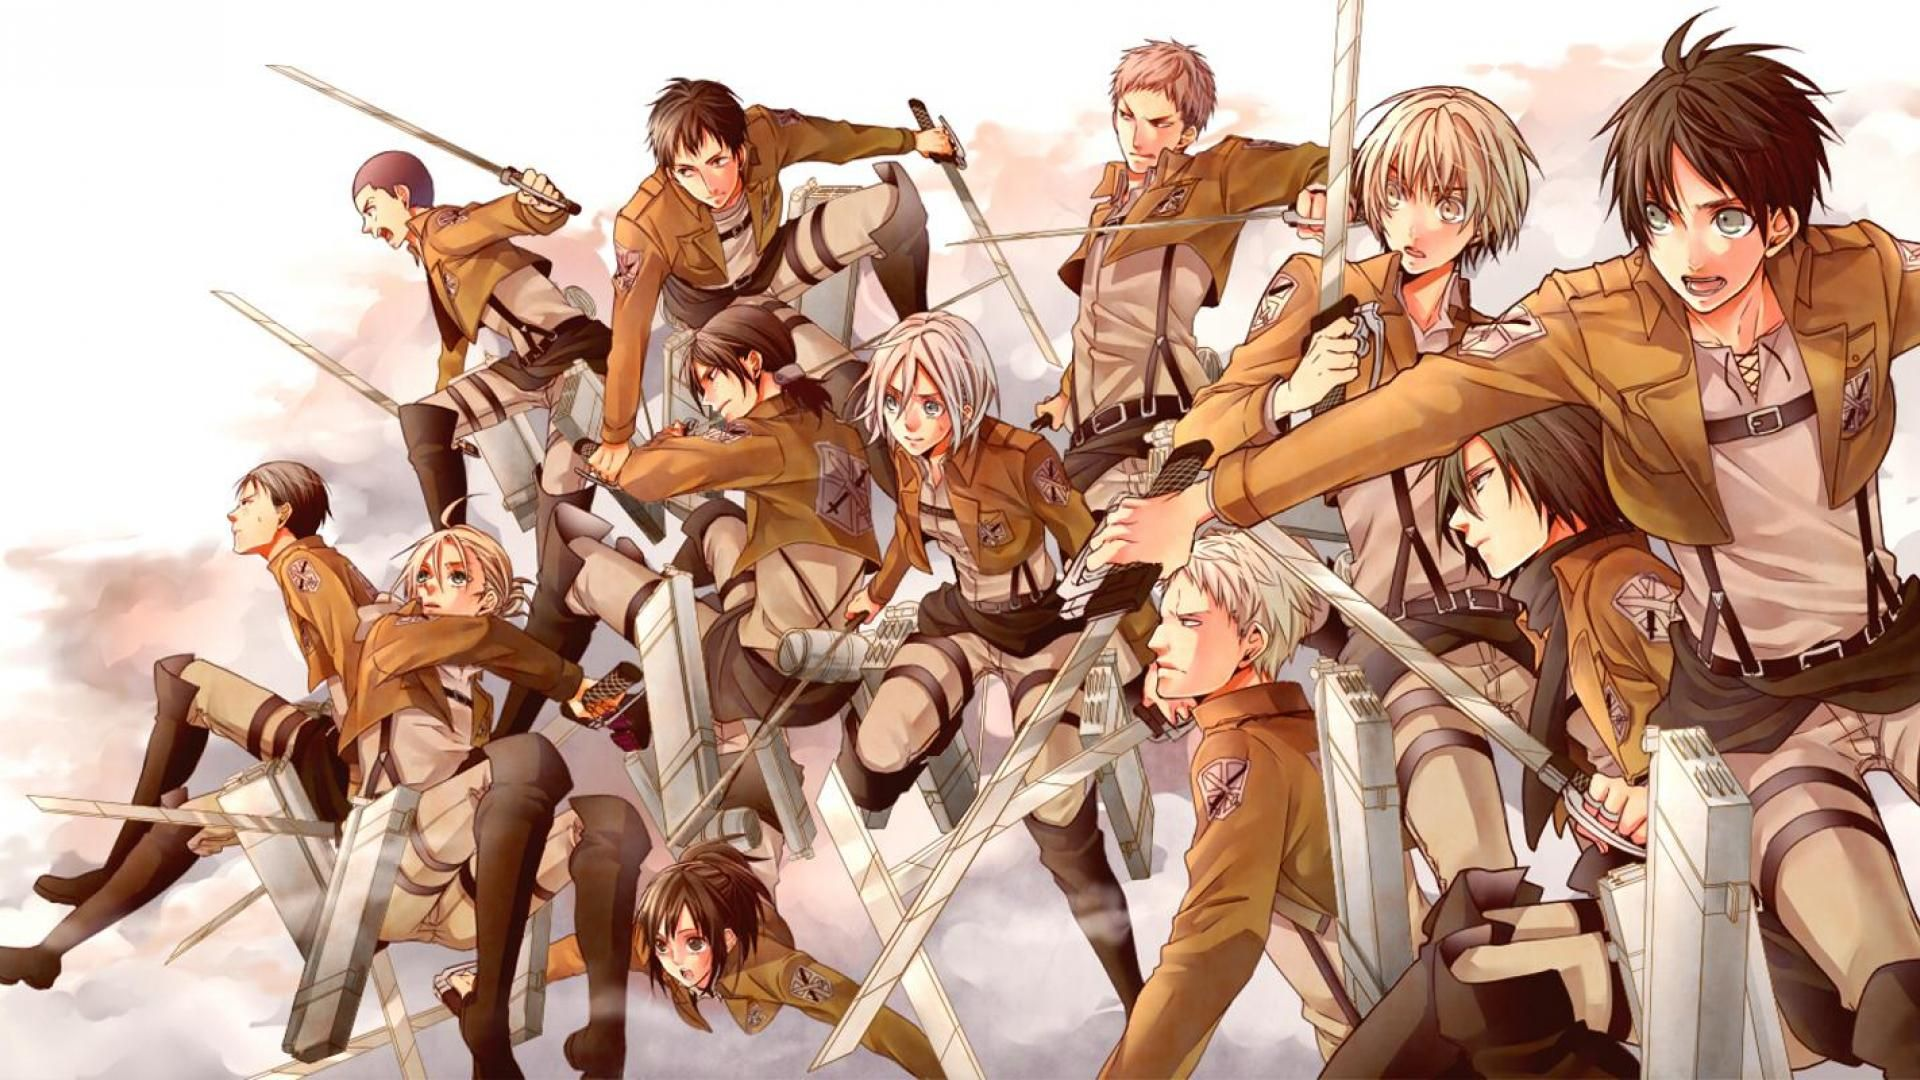 Attack On Titan Wallpaper Hd 1920x1080 Picture Gallery anime 1920x1080